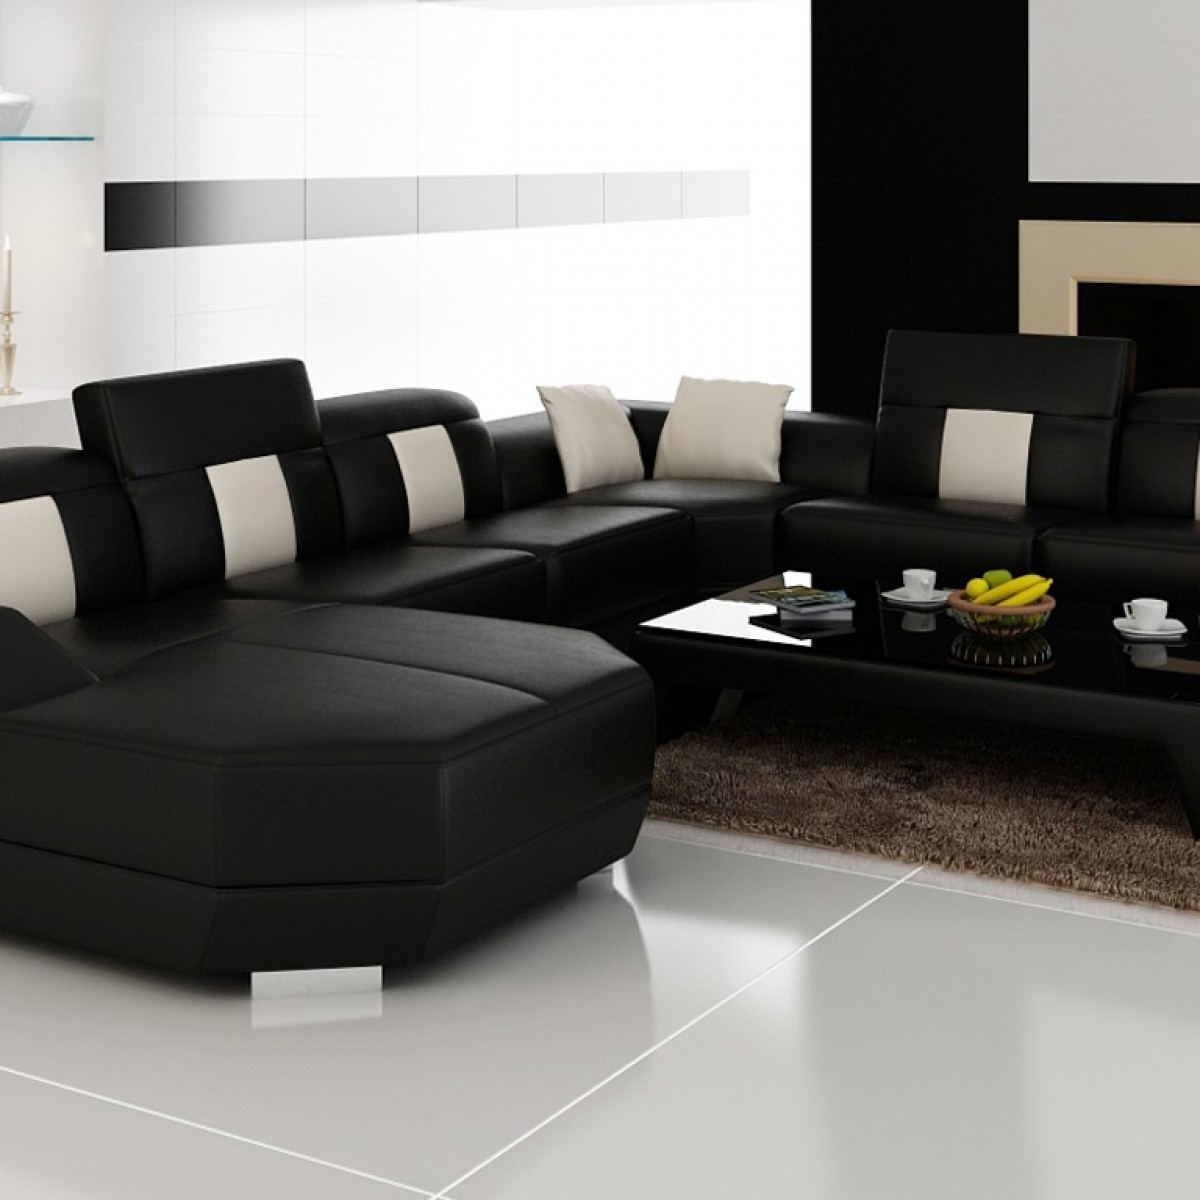 Most Recently Released Adjustable Sectional Sofas With Queen Bed In Furniture : Sectional Sofa Queen Sleeper Corner Couch Liverpool (View 12 of 20)